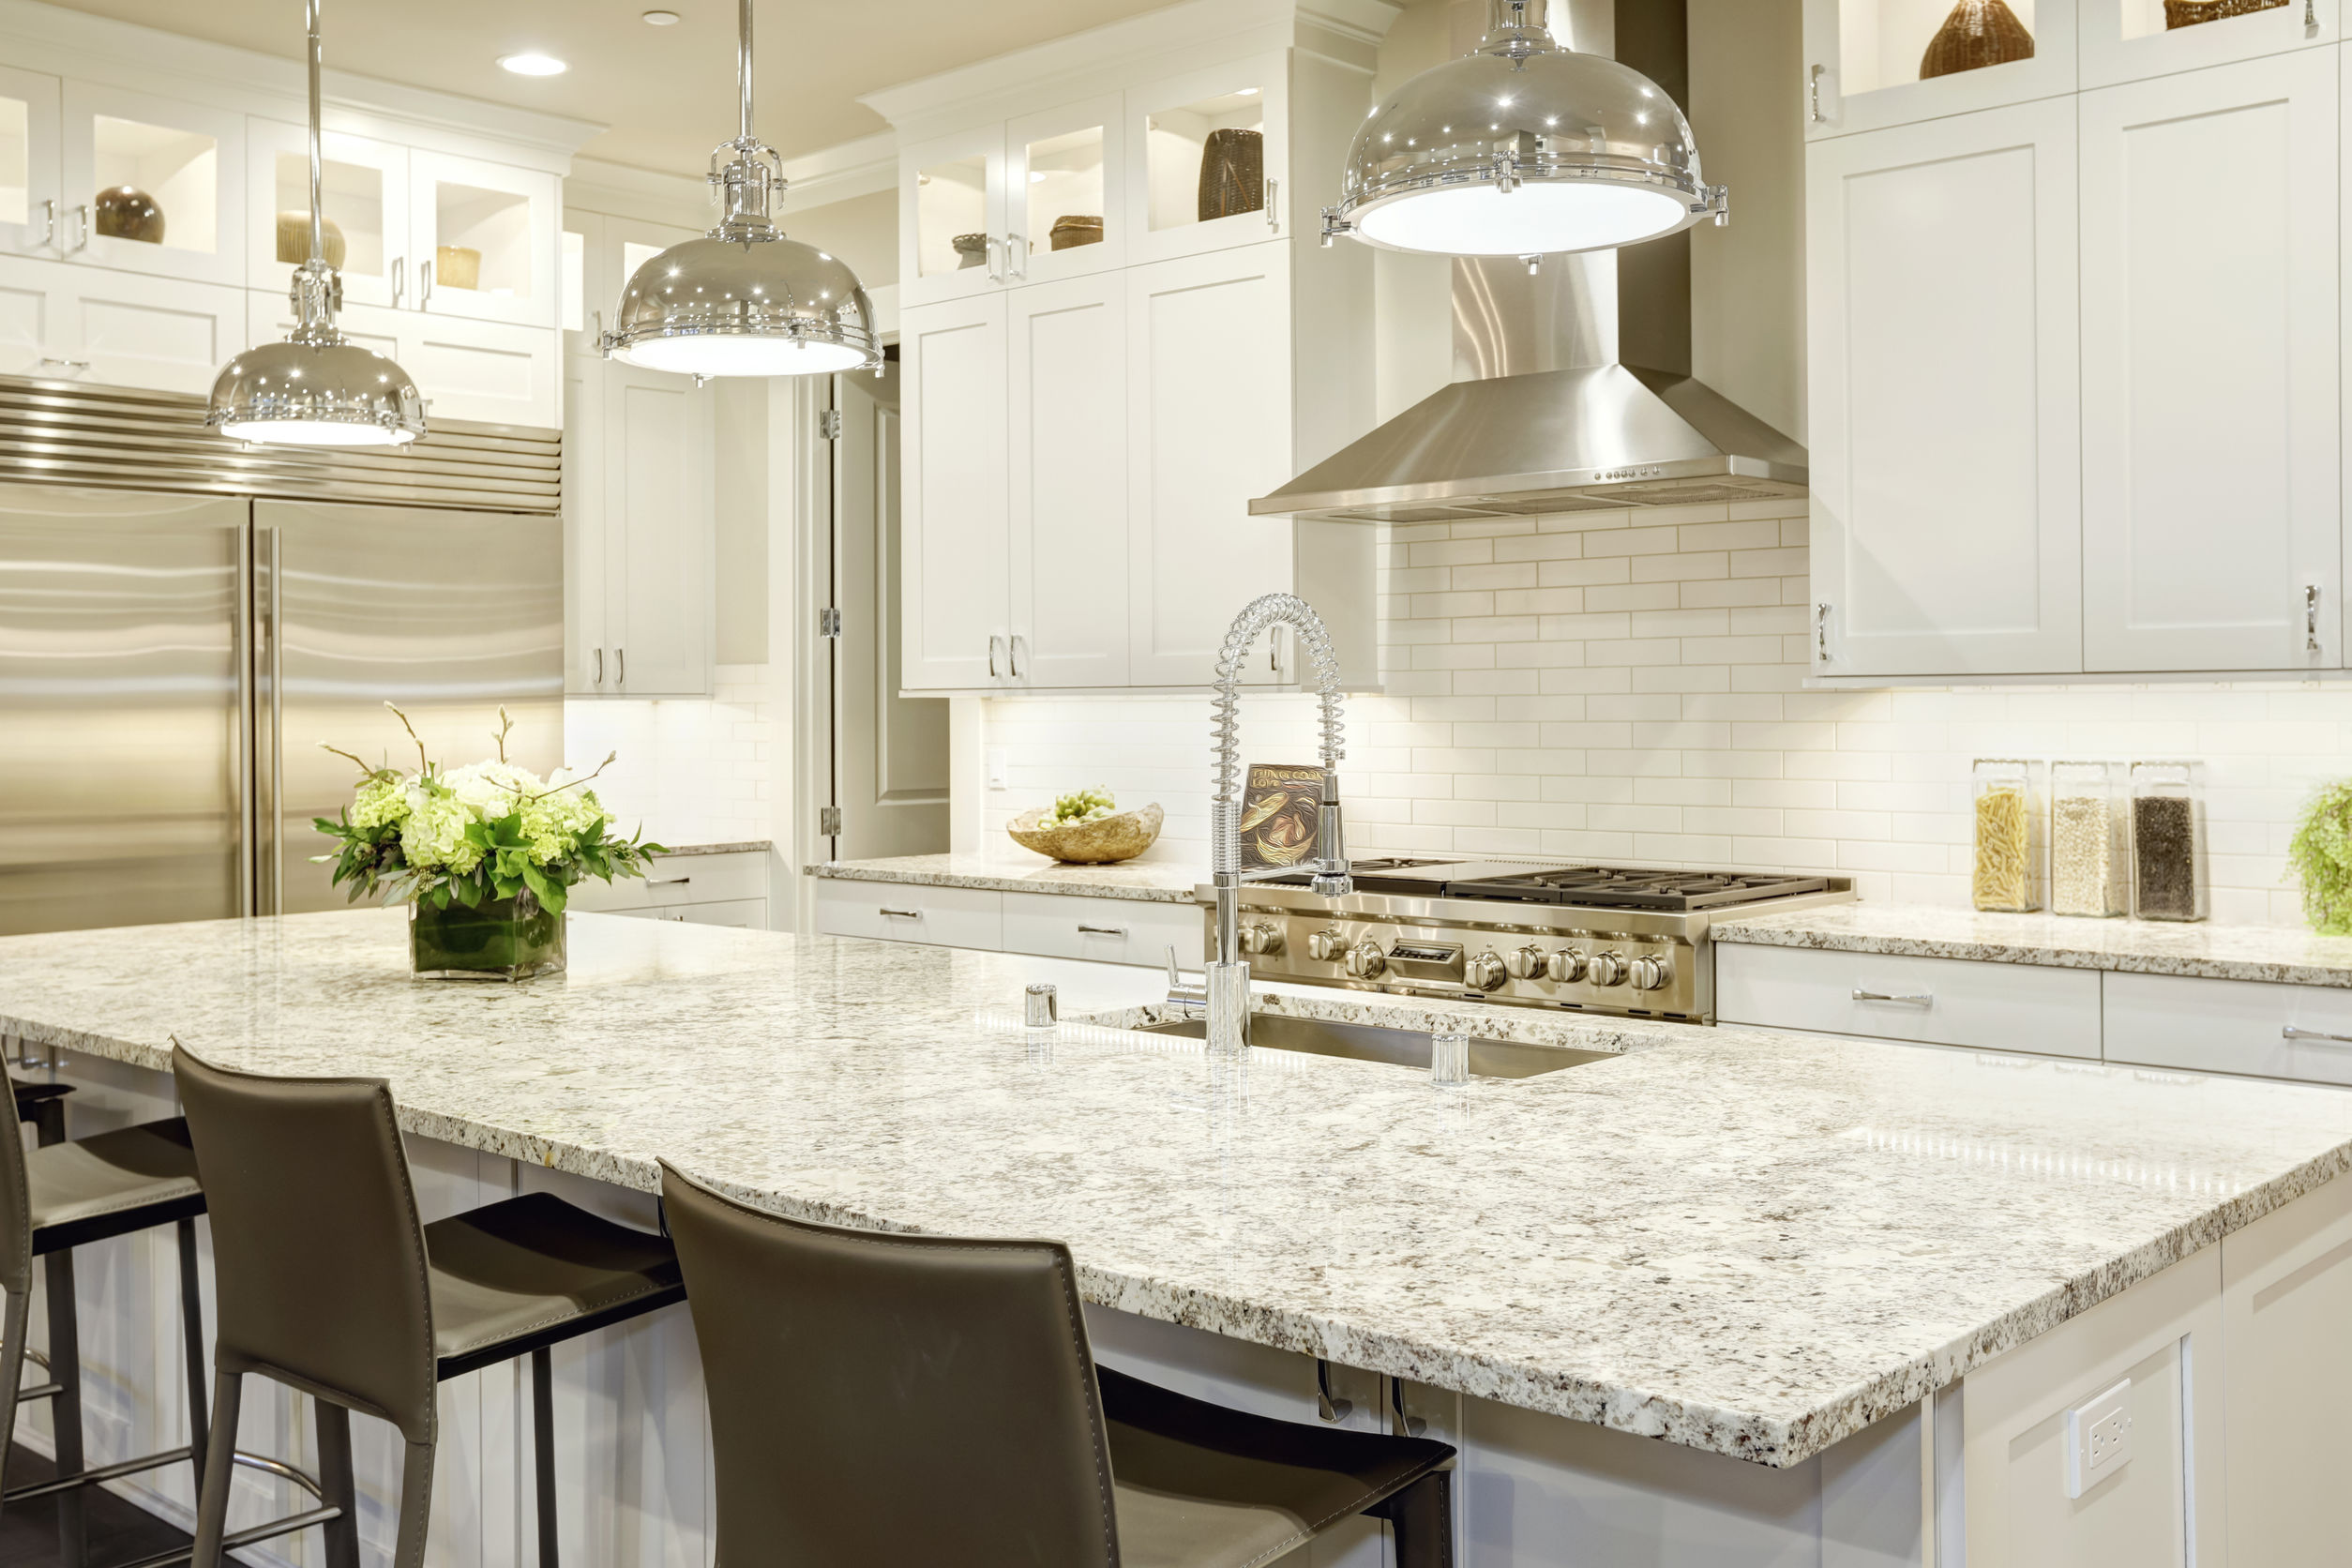 What You Don't Know About Granite - Post